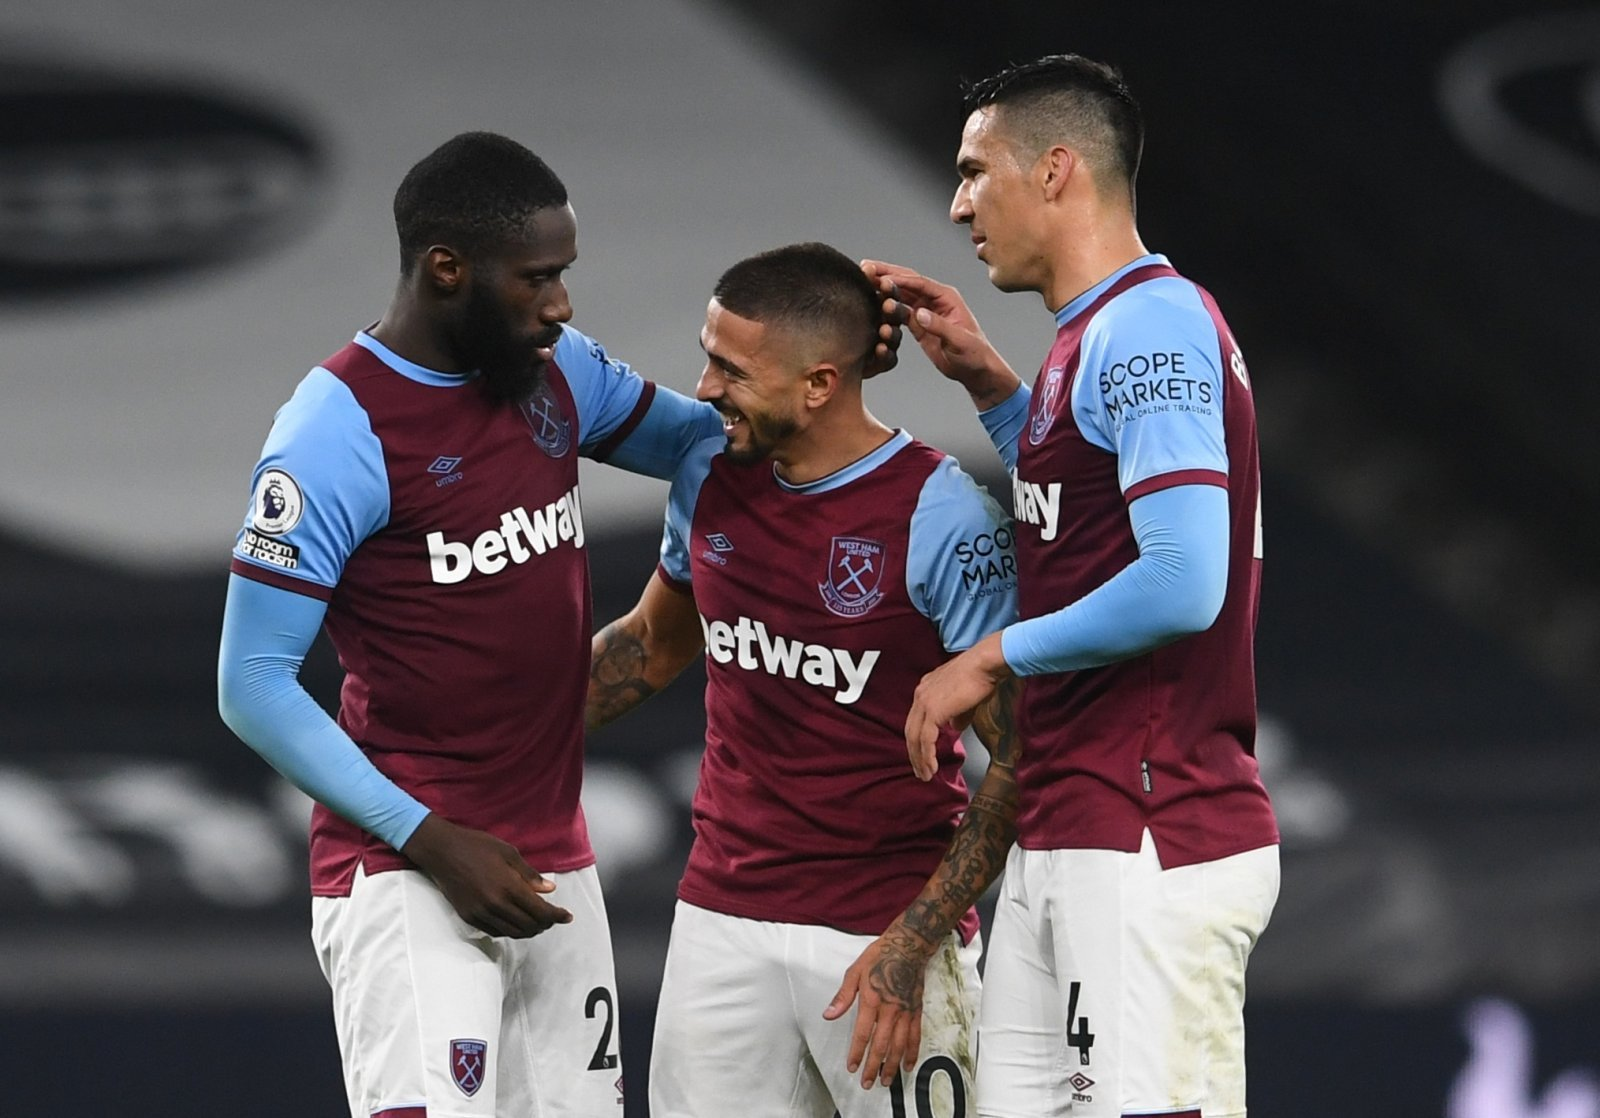 West Ham could be without Lanzini | The Transfer Tavern